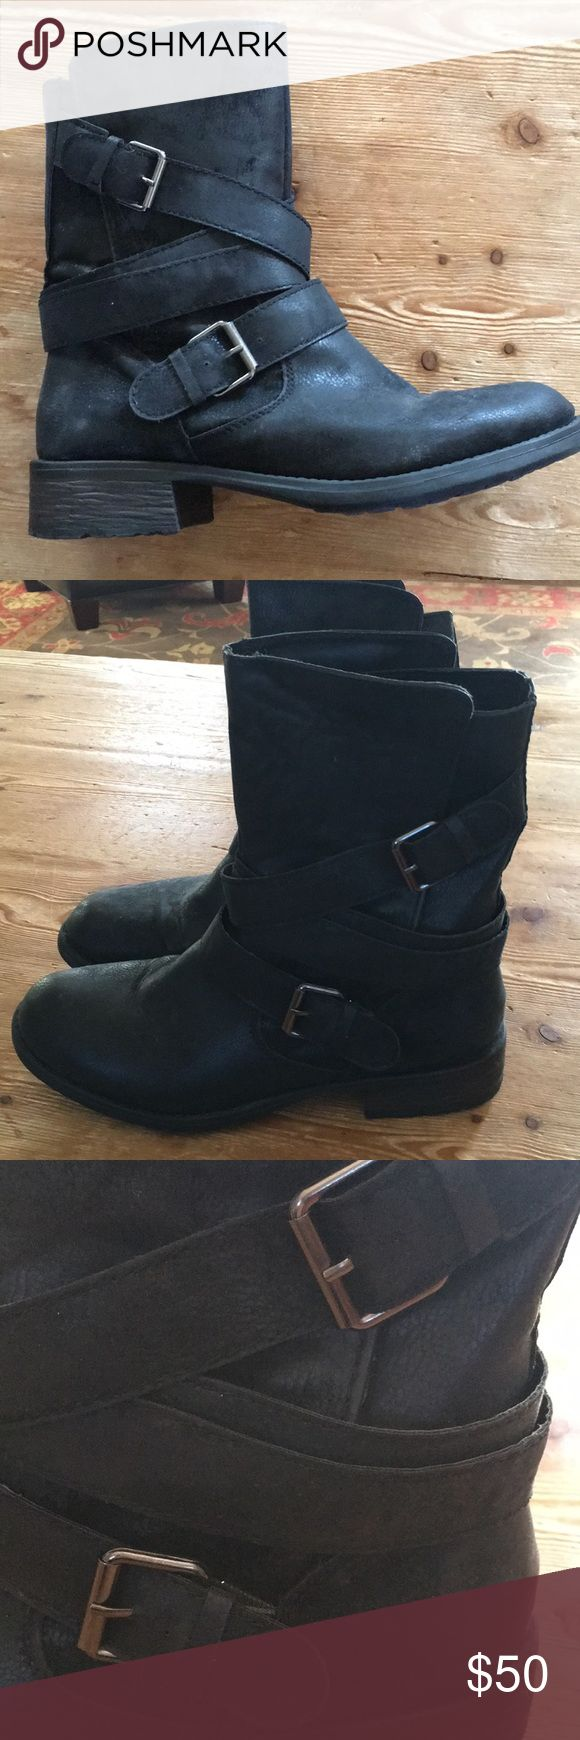 Rampage black moto boots, size 10 Rampage black moto boots, size 10, in faux pebbled leather, very realistic looking. These boots look amazing with leggings or with a cute skirt or dress. In excellent condition. Rampage Shoes Combat & Moto Boots